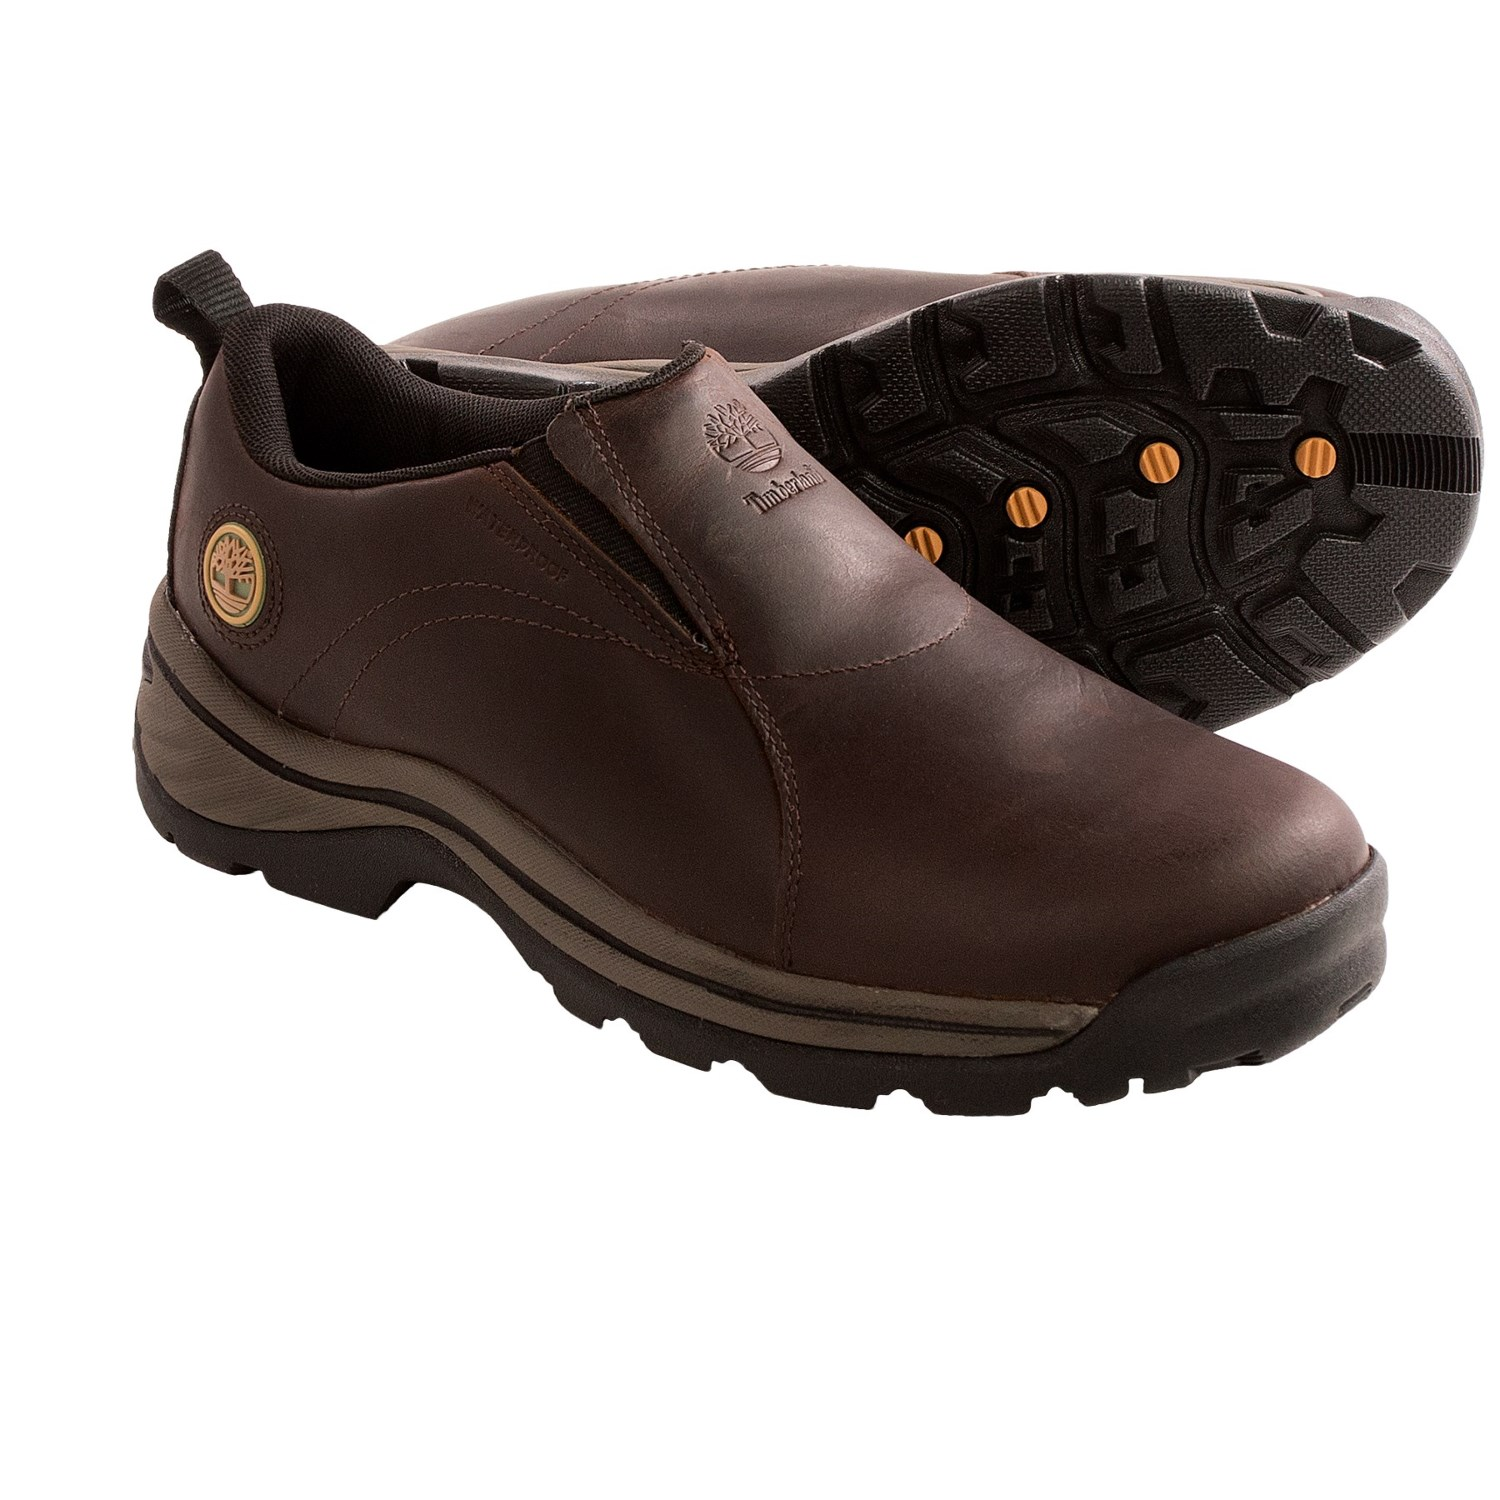 Keen 59 Shoes